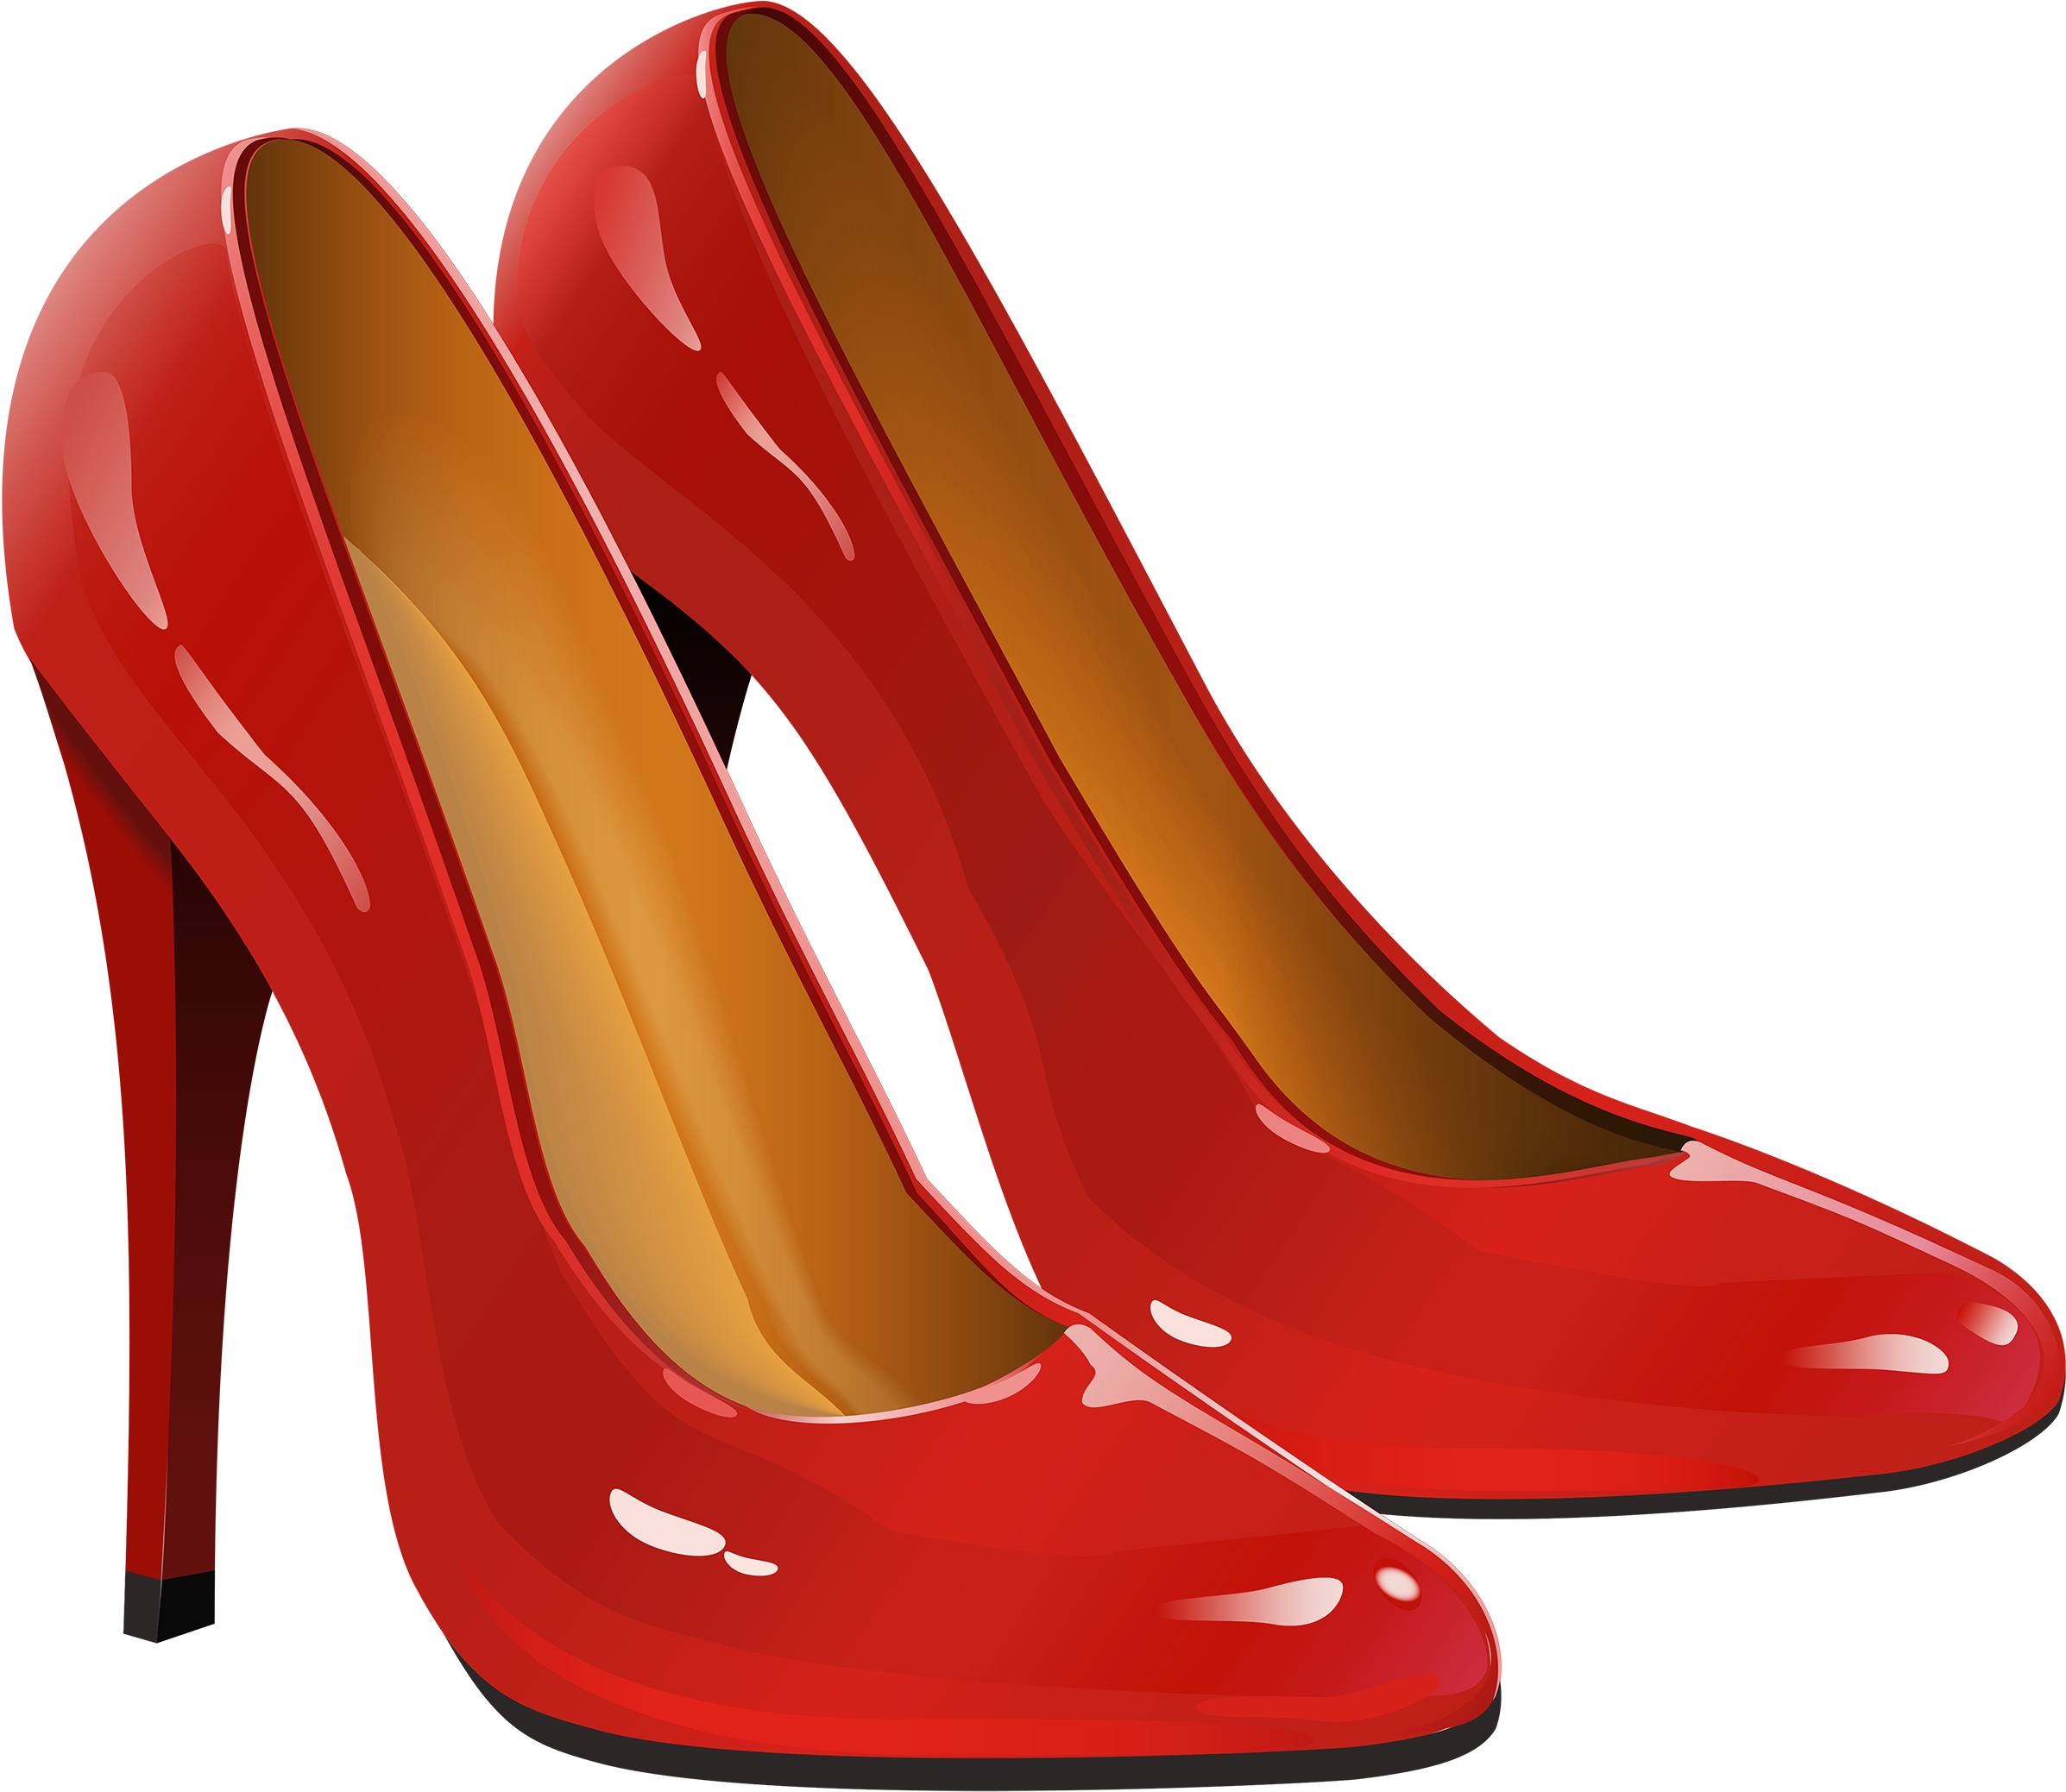 HD Red Women Shoes Png Transparent Image.